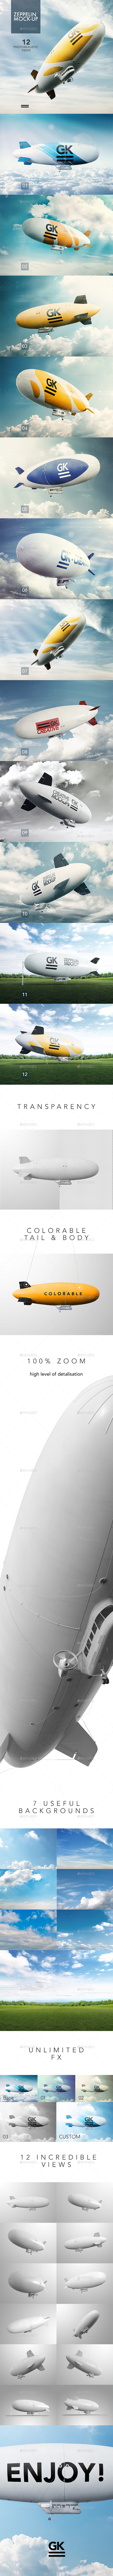 Realistic 3D Zeppelin Mock-ups / Dirigible Mock up  - Miscellaneous Print